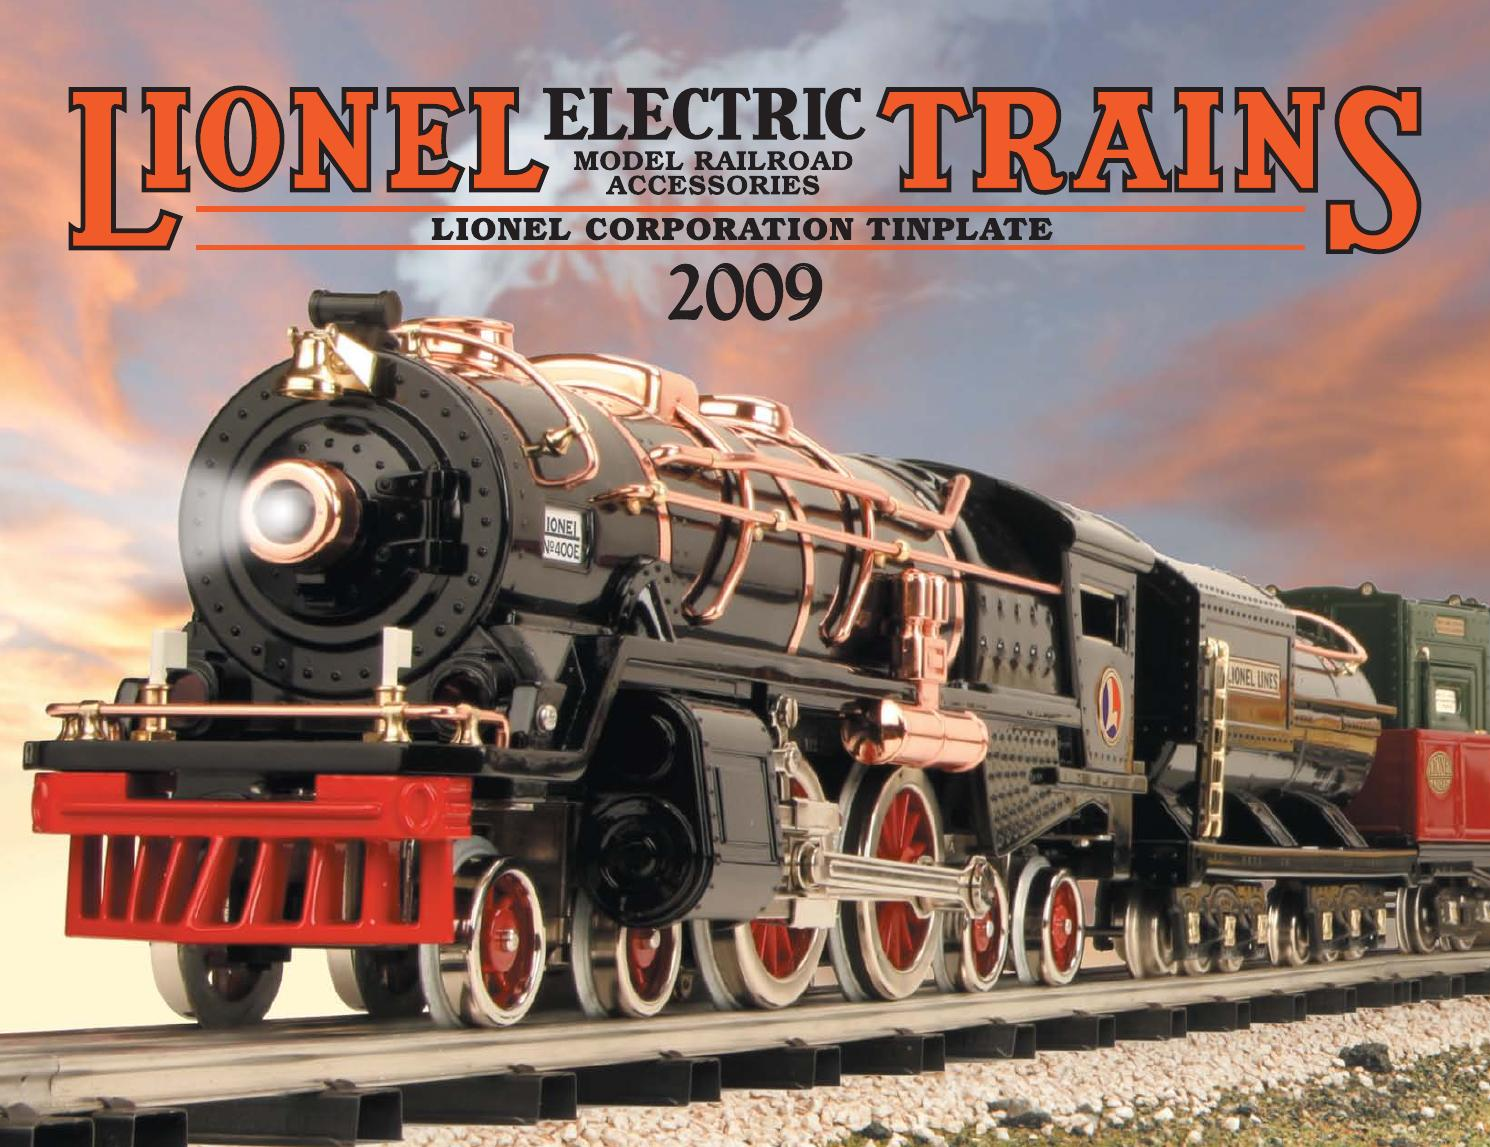 LIONEL NYC S-1 ELECTRIC FOURTH SPECIAL INTRODUCTION 2003 CATALOG//BROCHURE